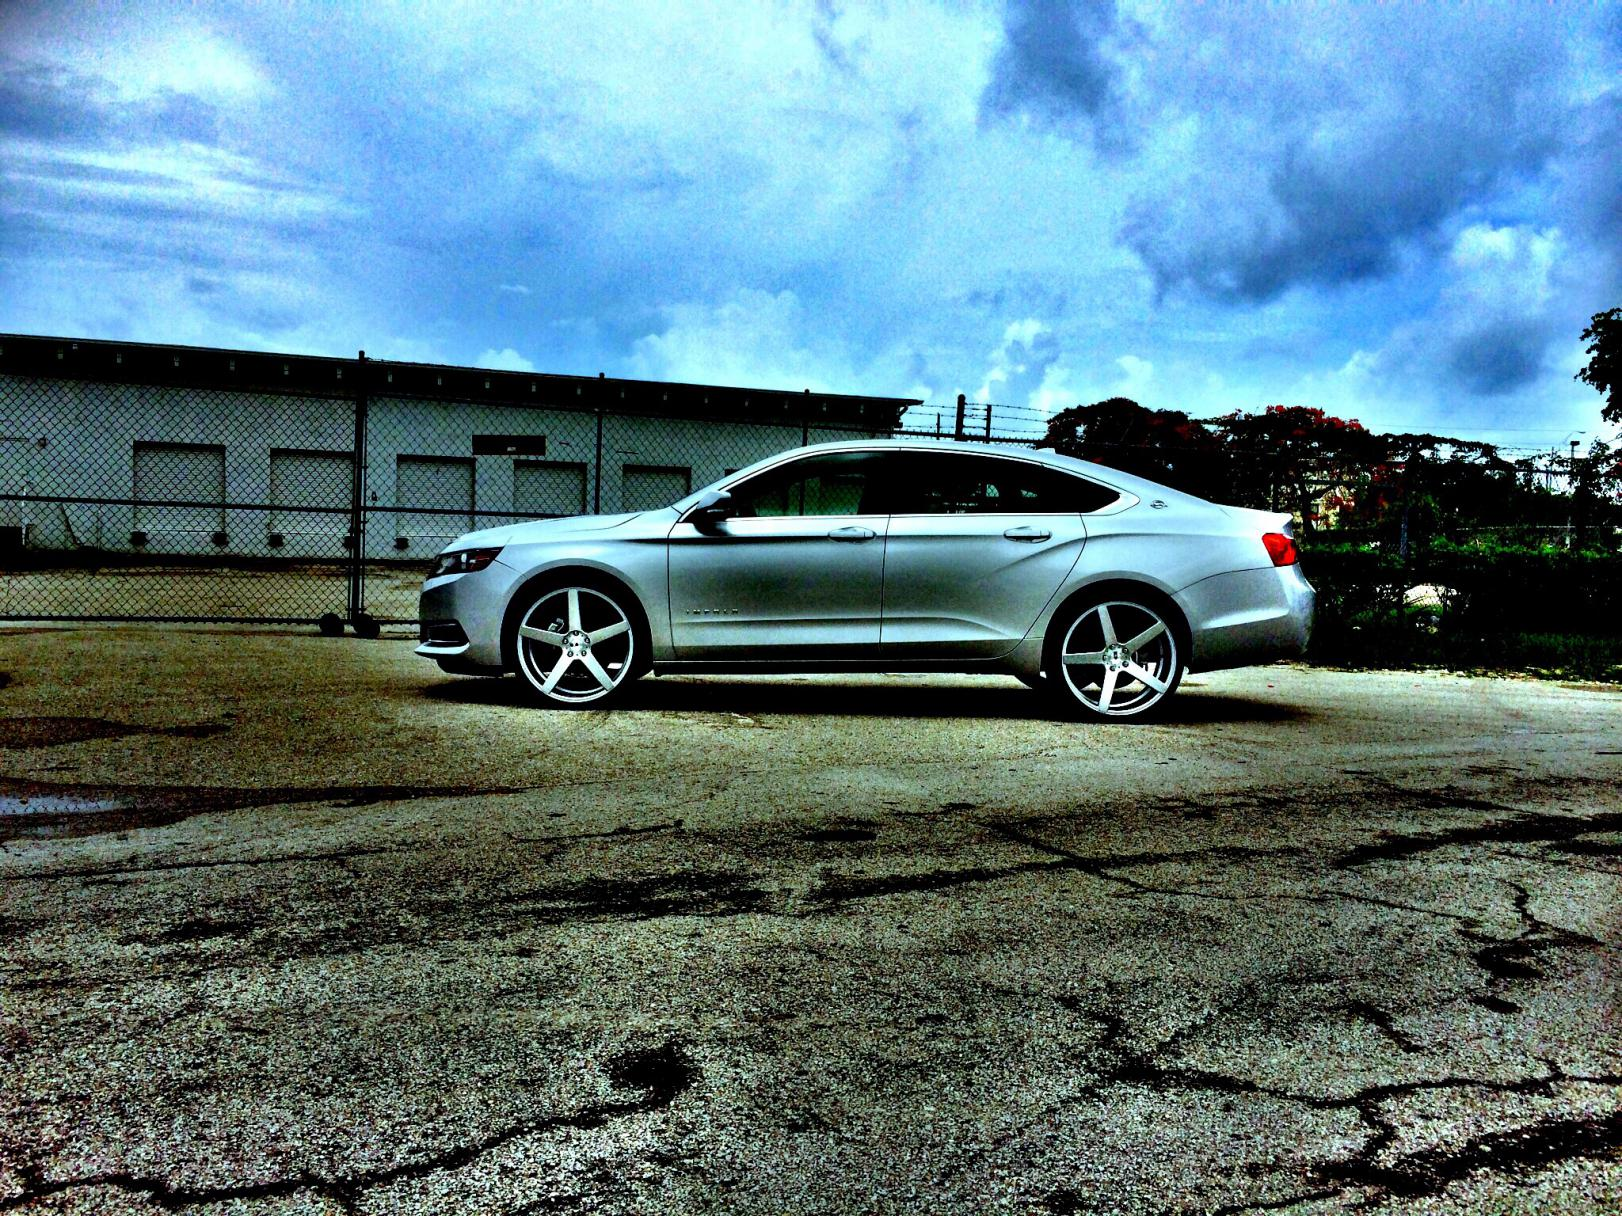 2014 Chevy Impala >> 2014 on 22's concaved - Chevy Impala Forums